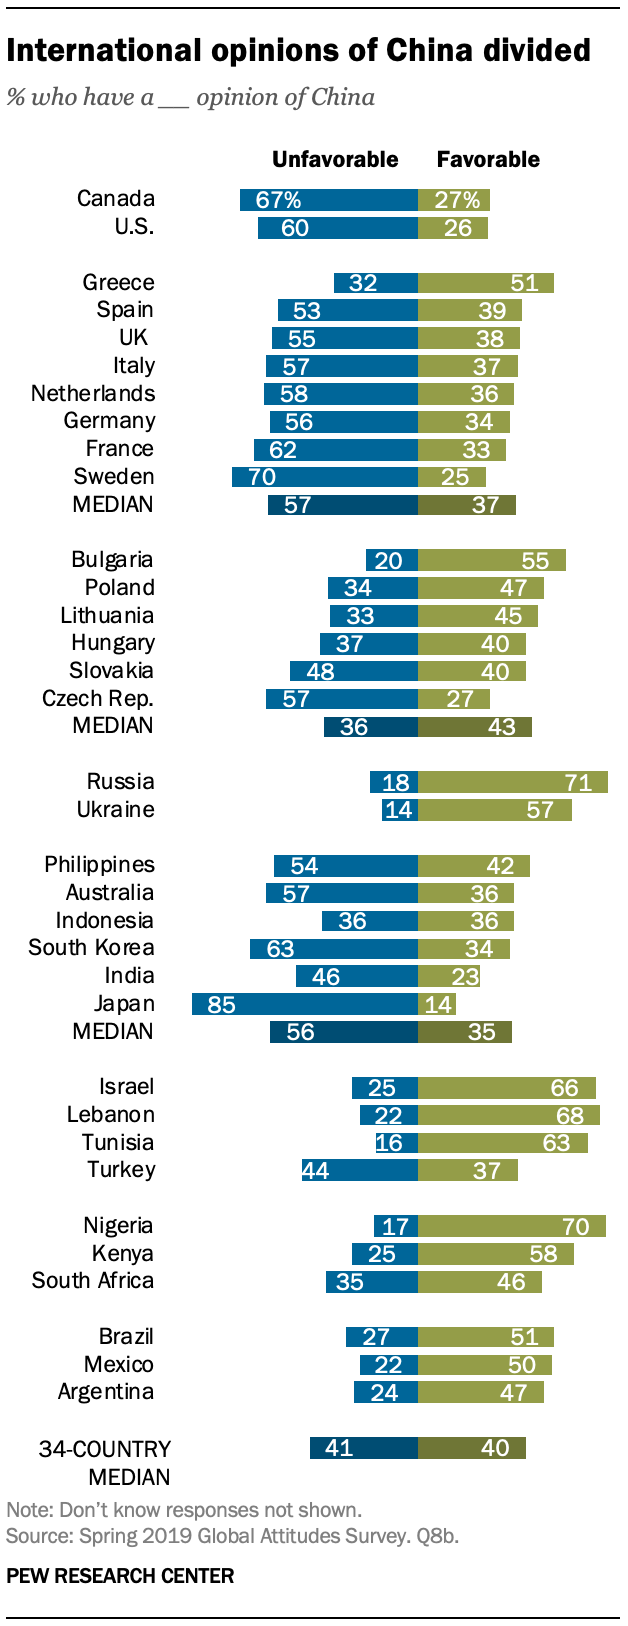 A chart showing international opinions of China divided